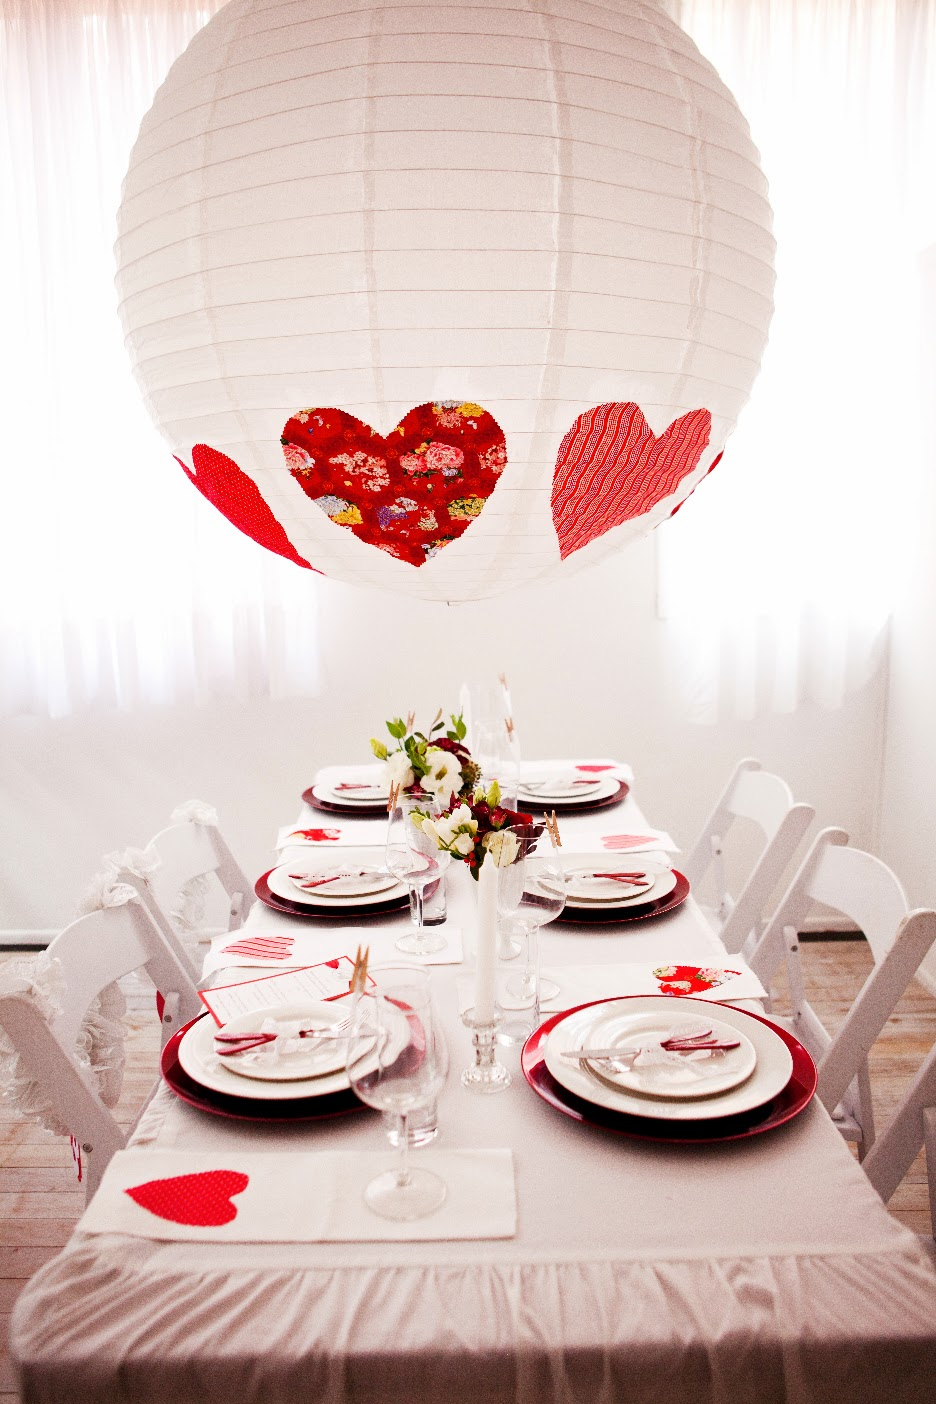 Heart Themed Wedding Decorations Ideas To Memorable Suggestions